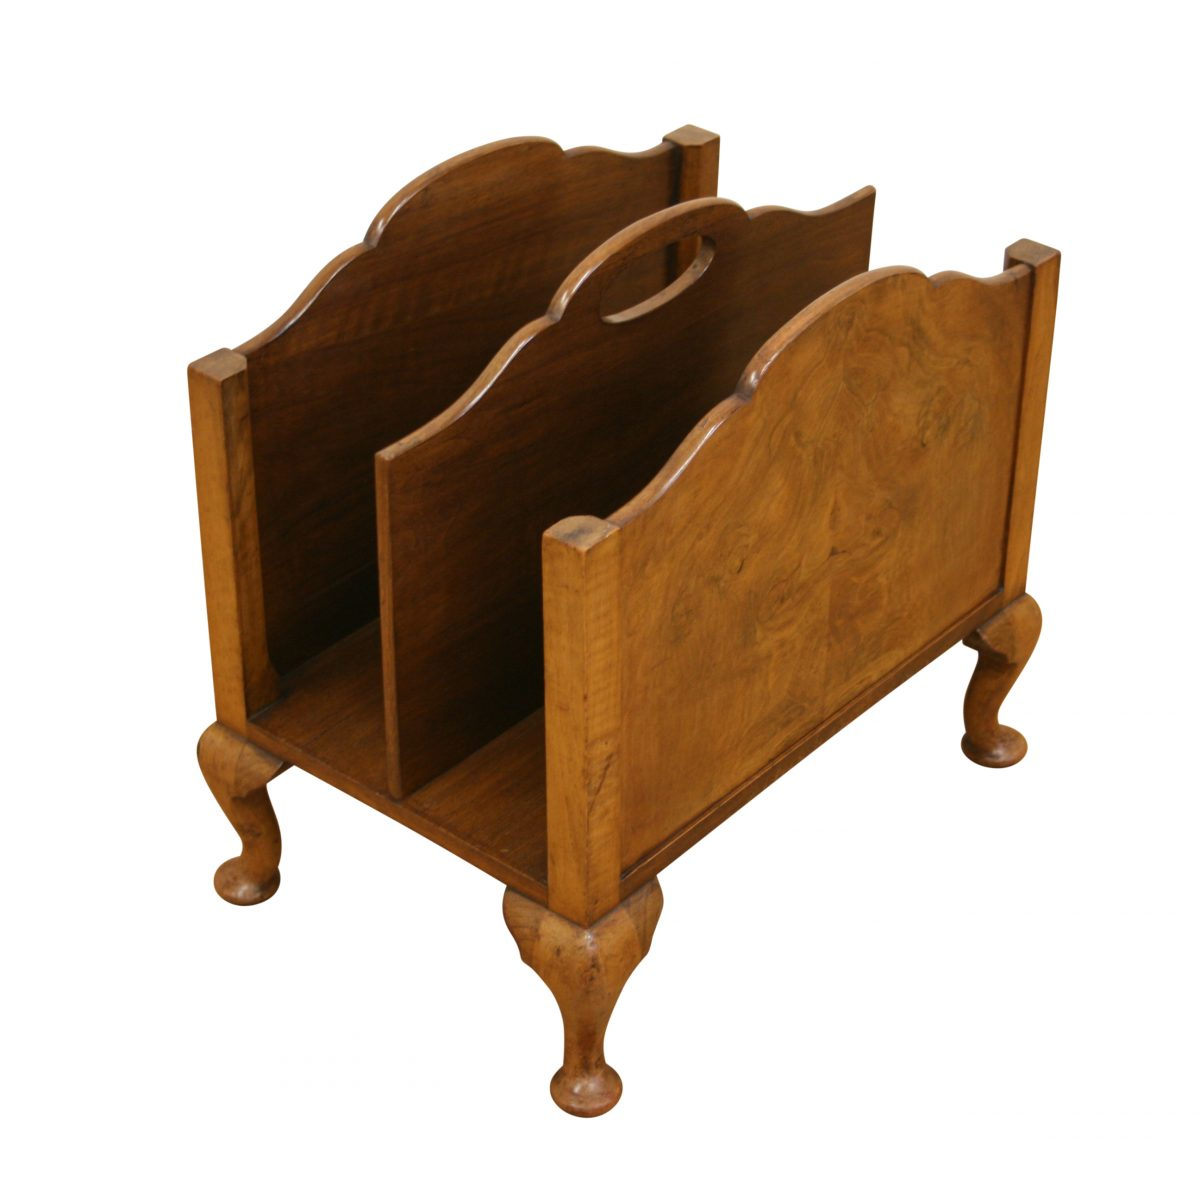 Waring & Gillows Art Deco magazine rack/williamsantiques